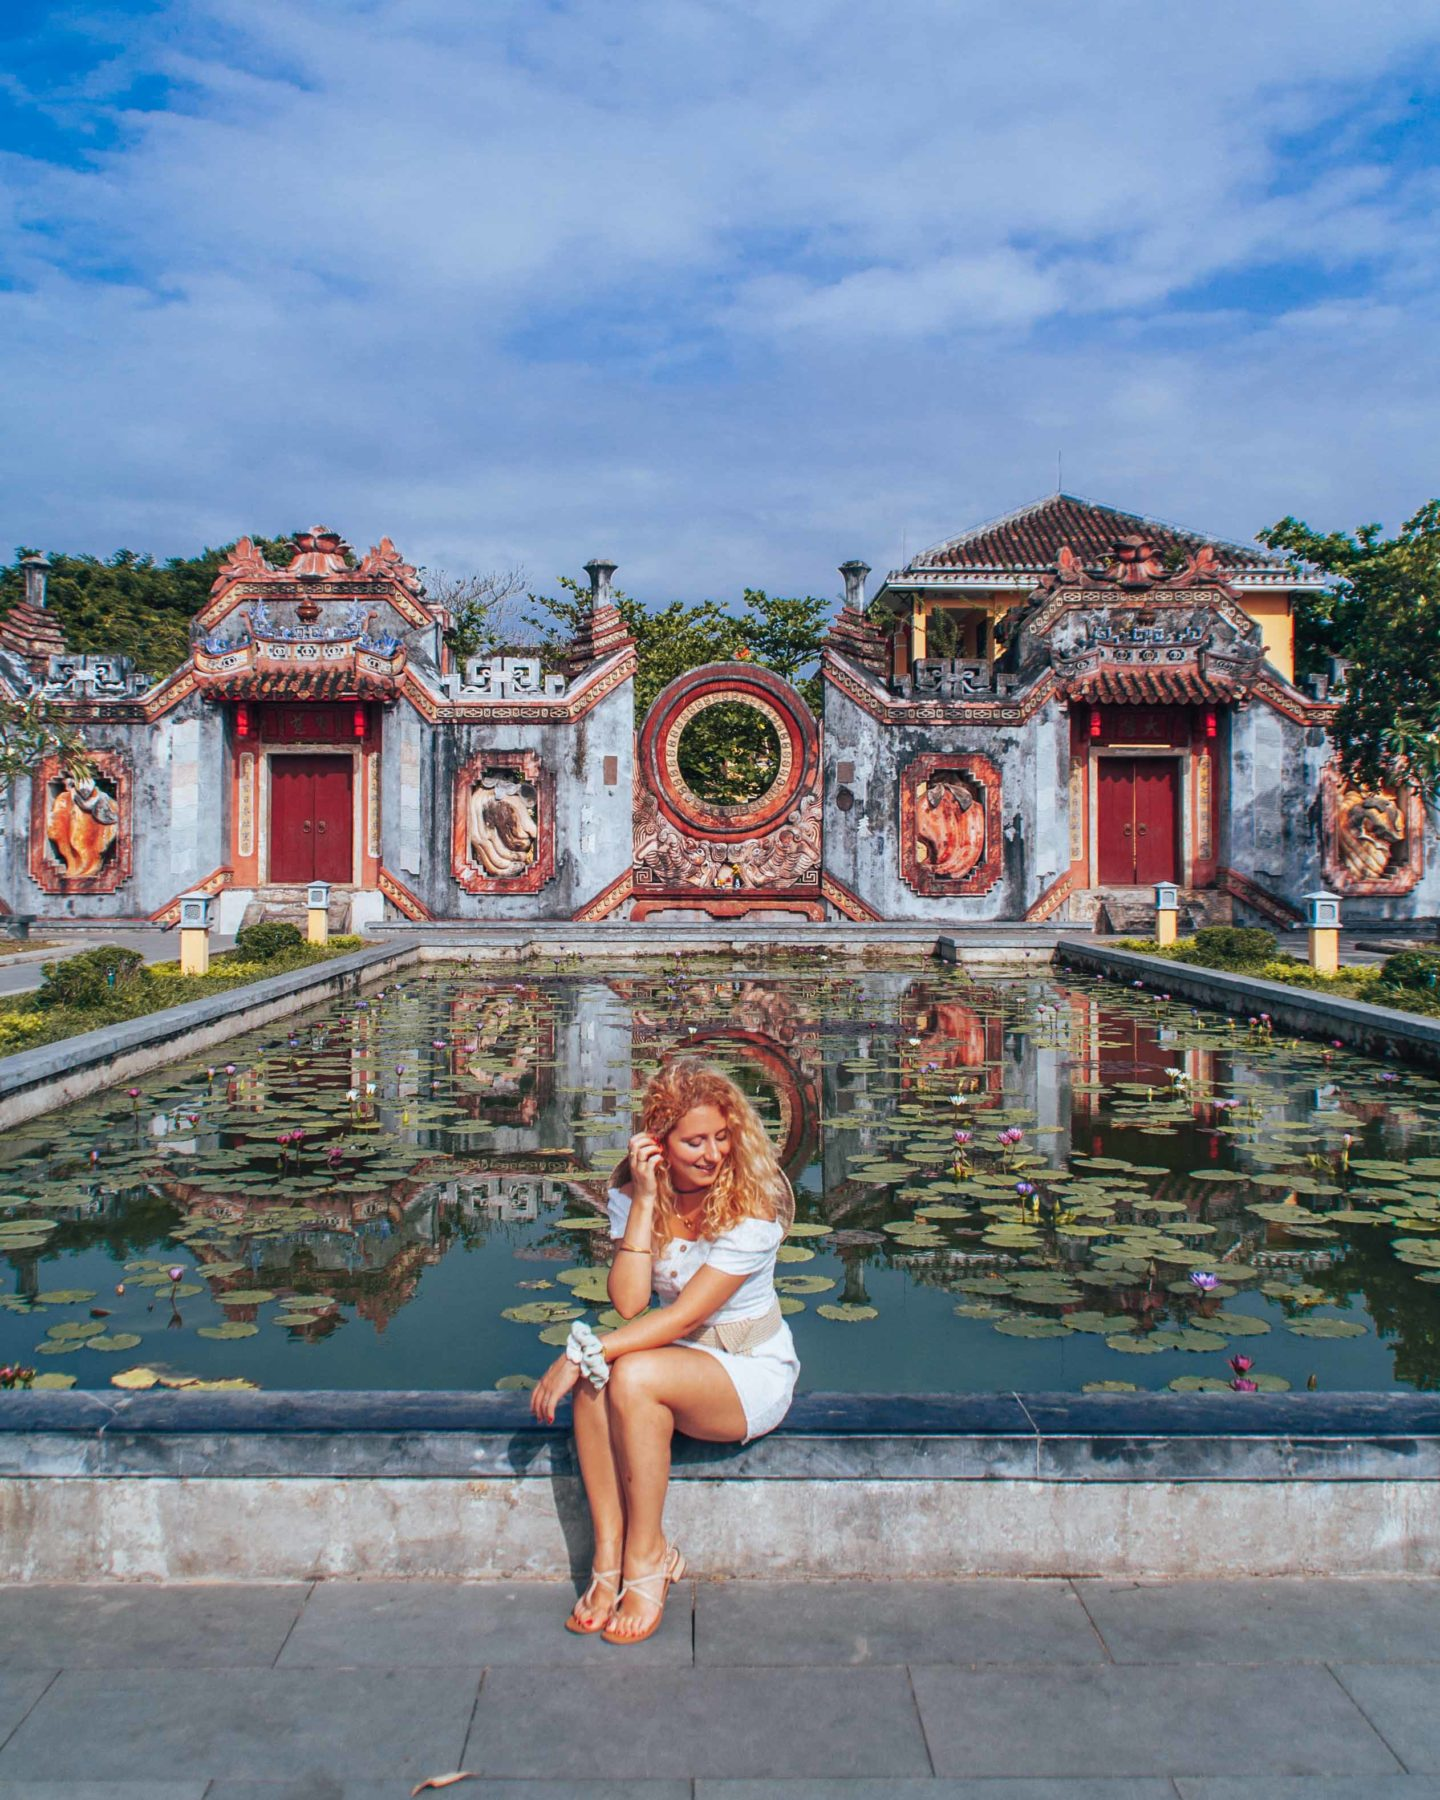 Ba Mu temple gate reflection, historical sightseeing place in Hoi An, Vietnam